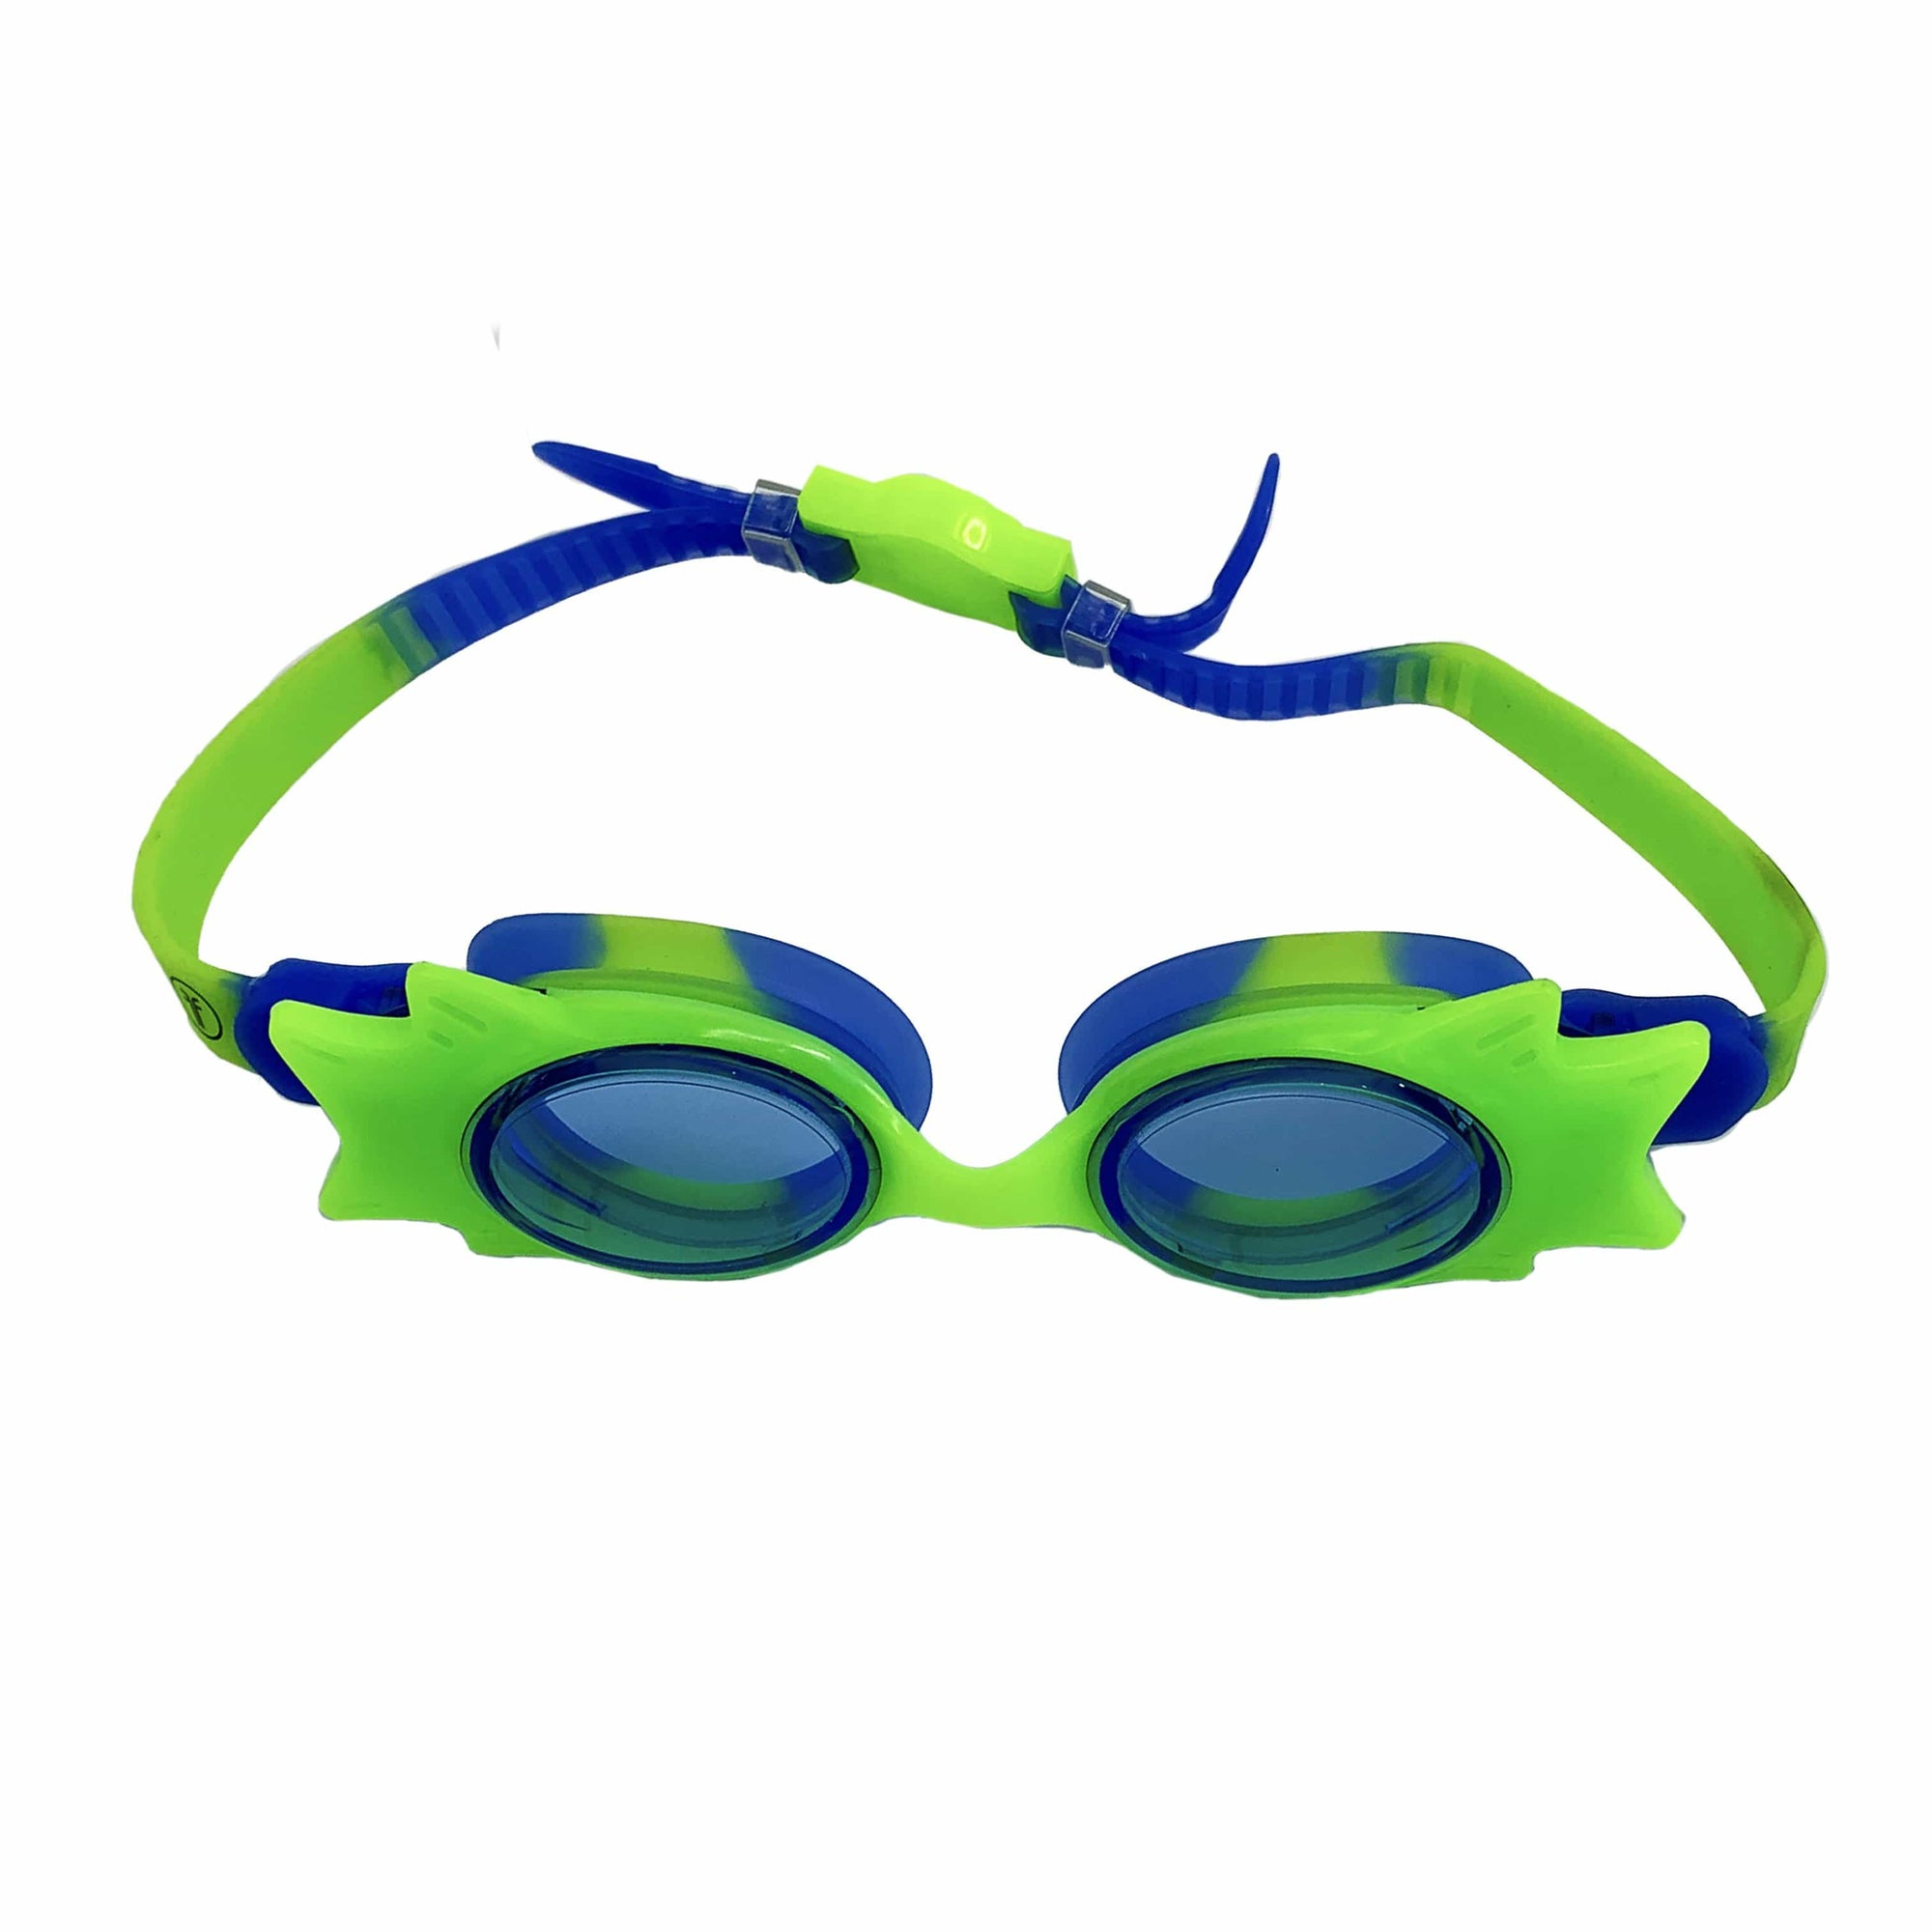 STANDARD WING FRAME JUNIOR GOGGLES (GREEN/BLUE) - FUNFIT